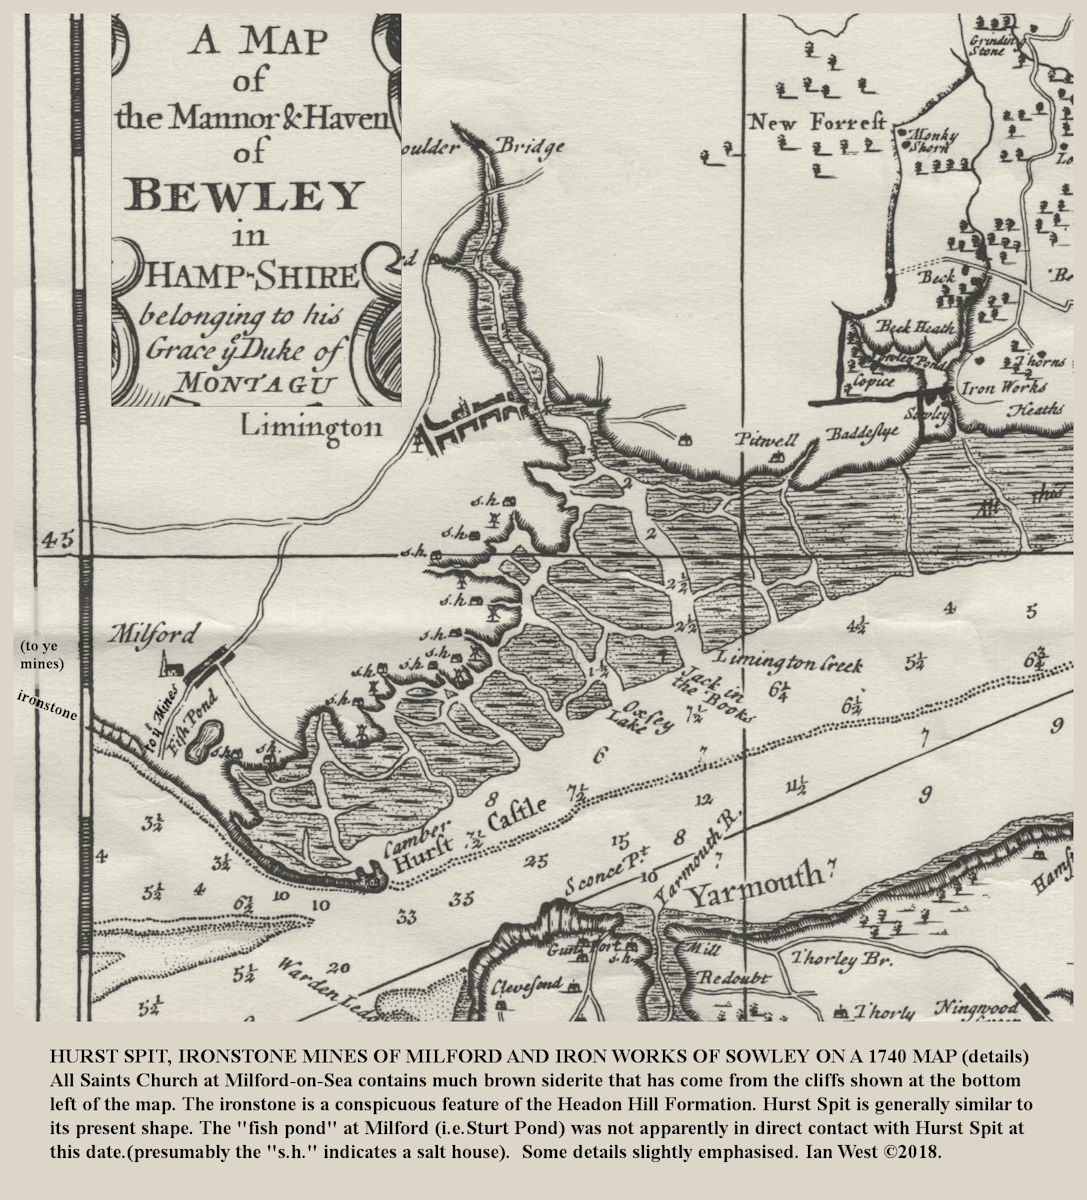 A map of Hurst Spit, Milford-on-Sea, Lymington and Sowley areas in 1740, showing locations of ironstone mining and iron ore production